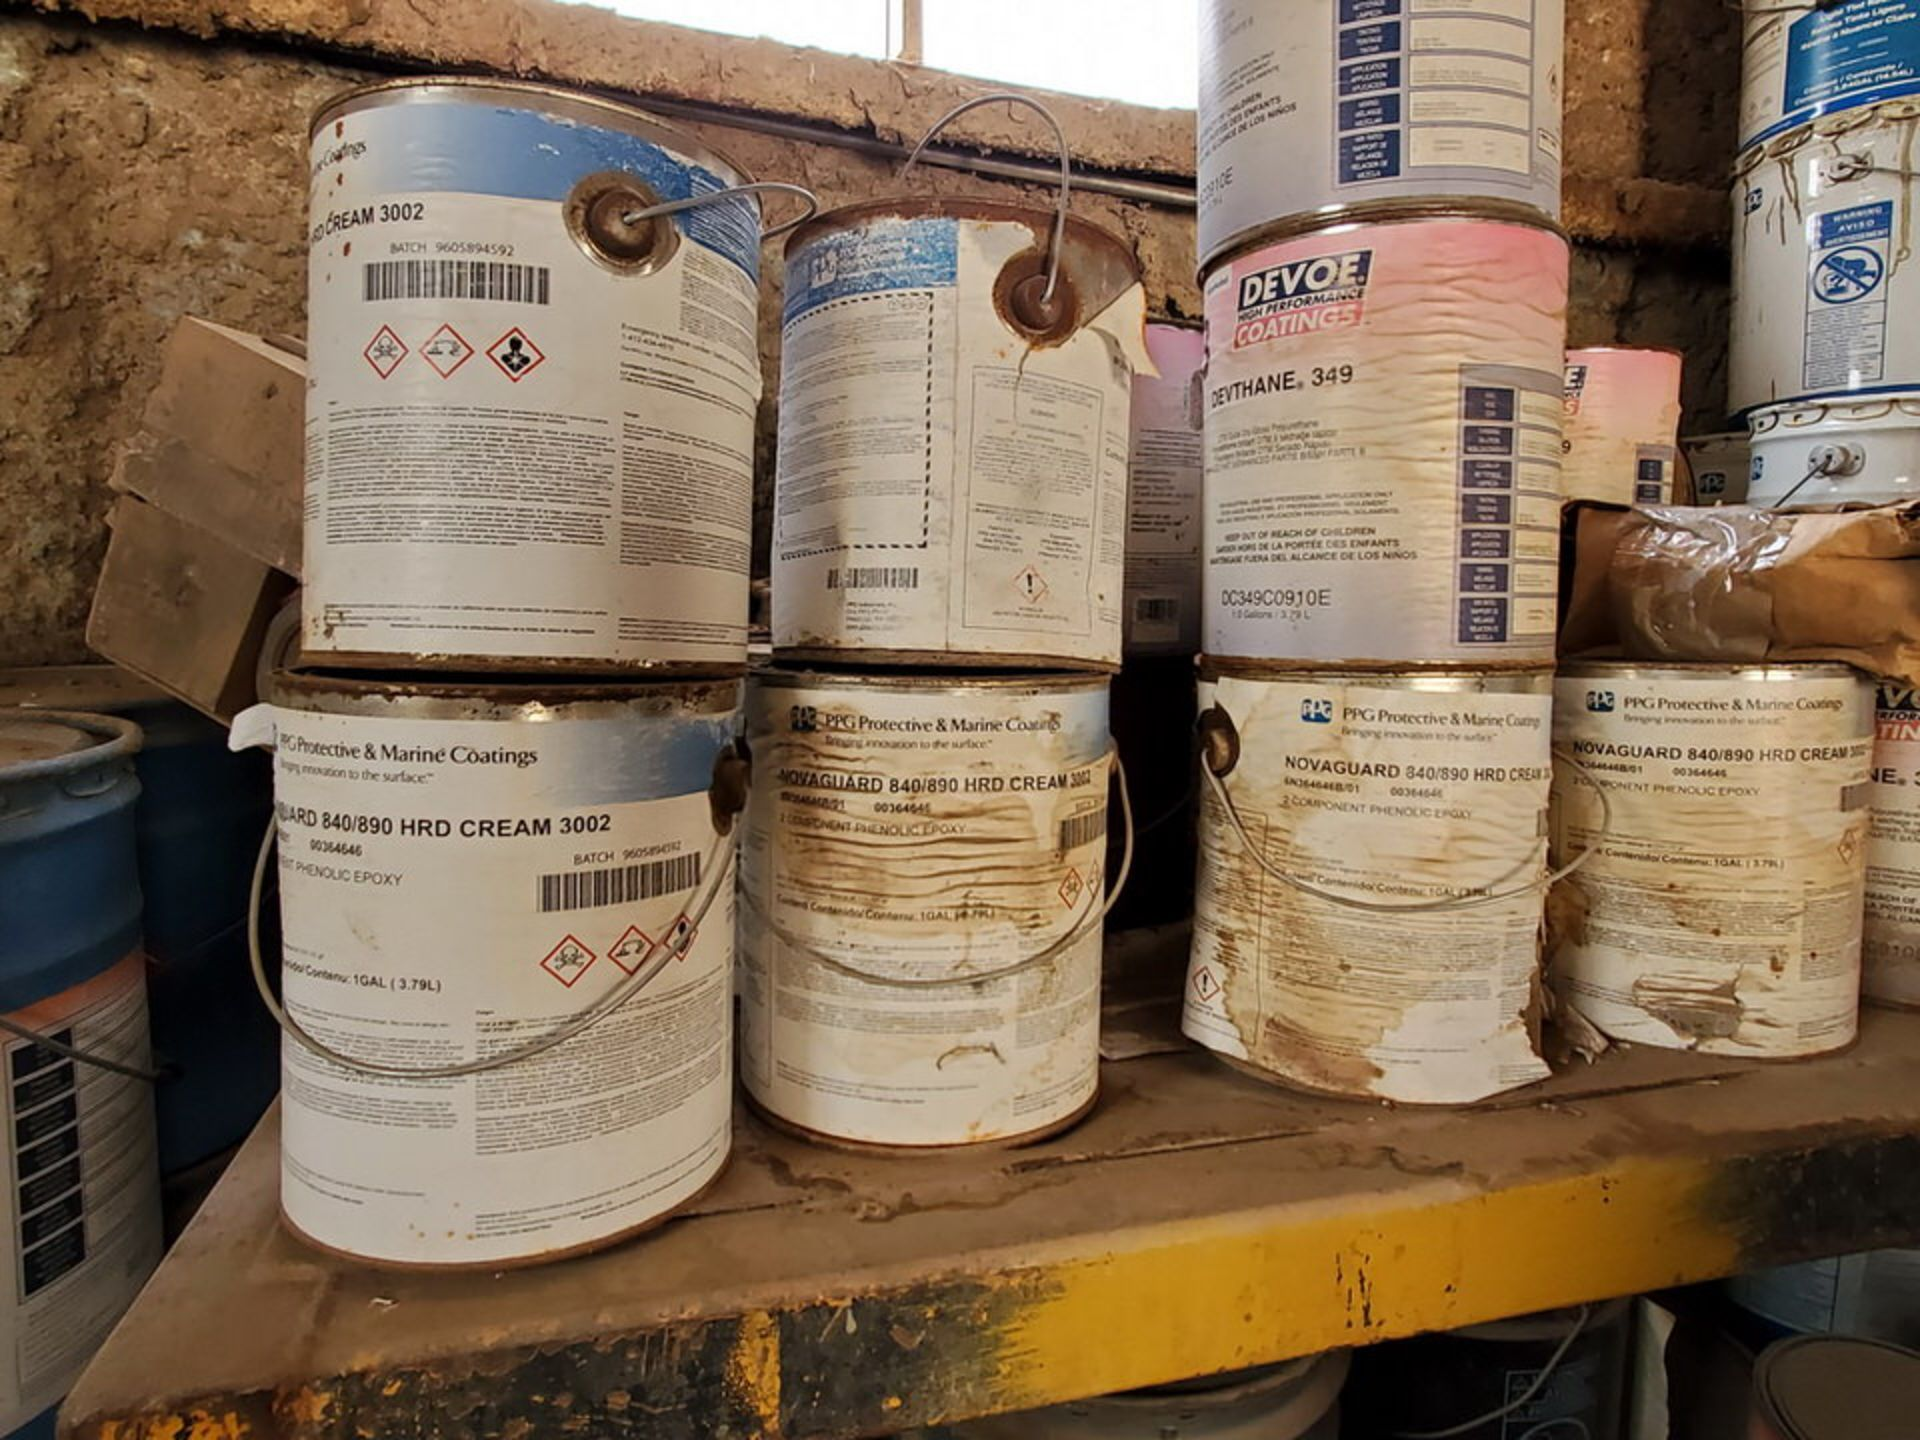 Assorted Paints & Marine Coatings Mfg's: PPG, Intl. & Other - Image 5 of 10